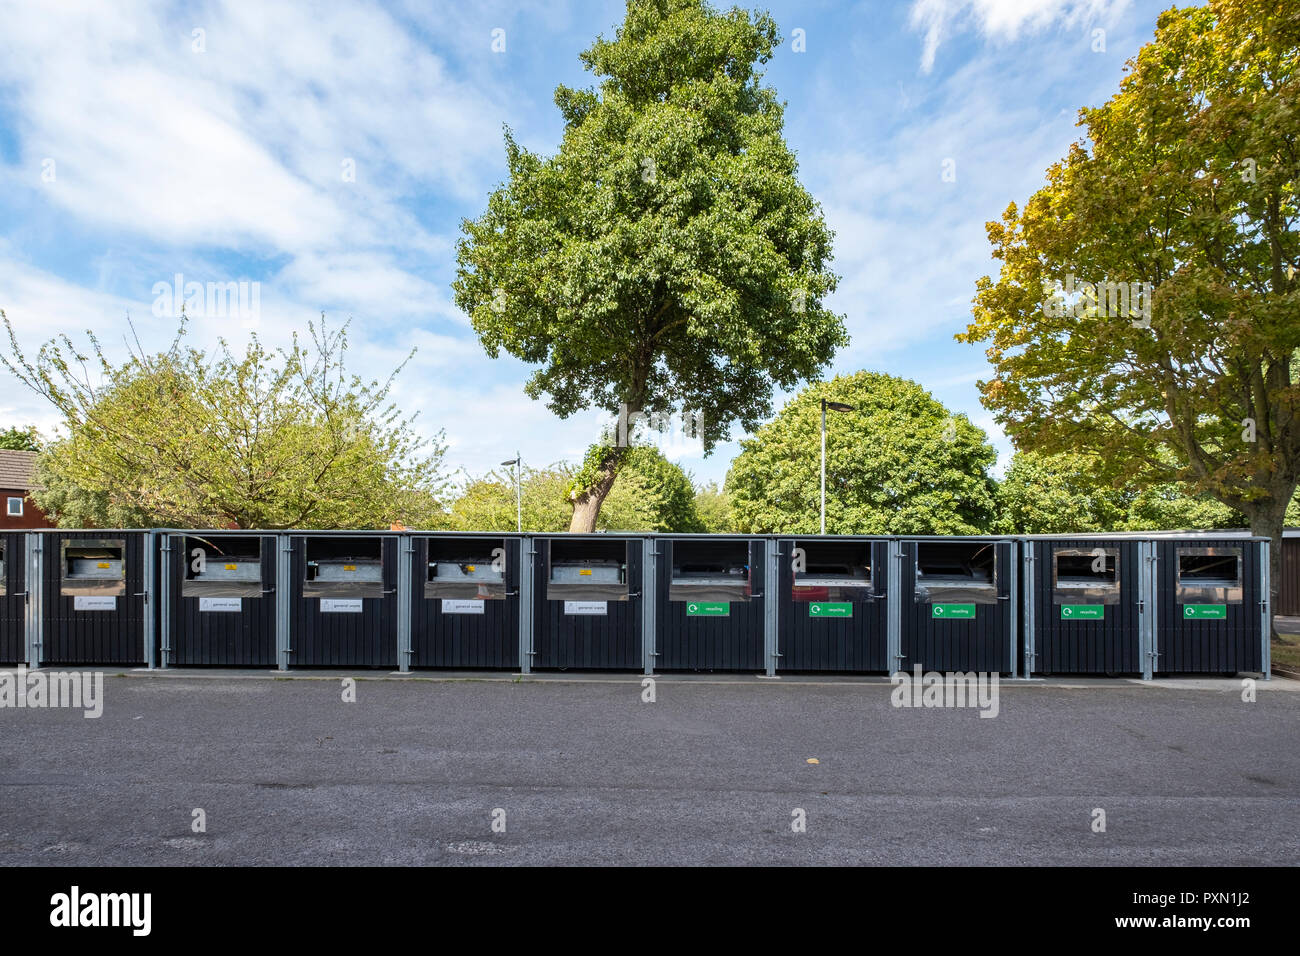 Row of recycle containers or bottle and paper bins in Crewe Cheshire UK - Stock Image